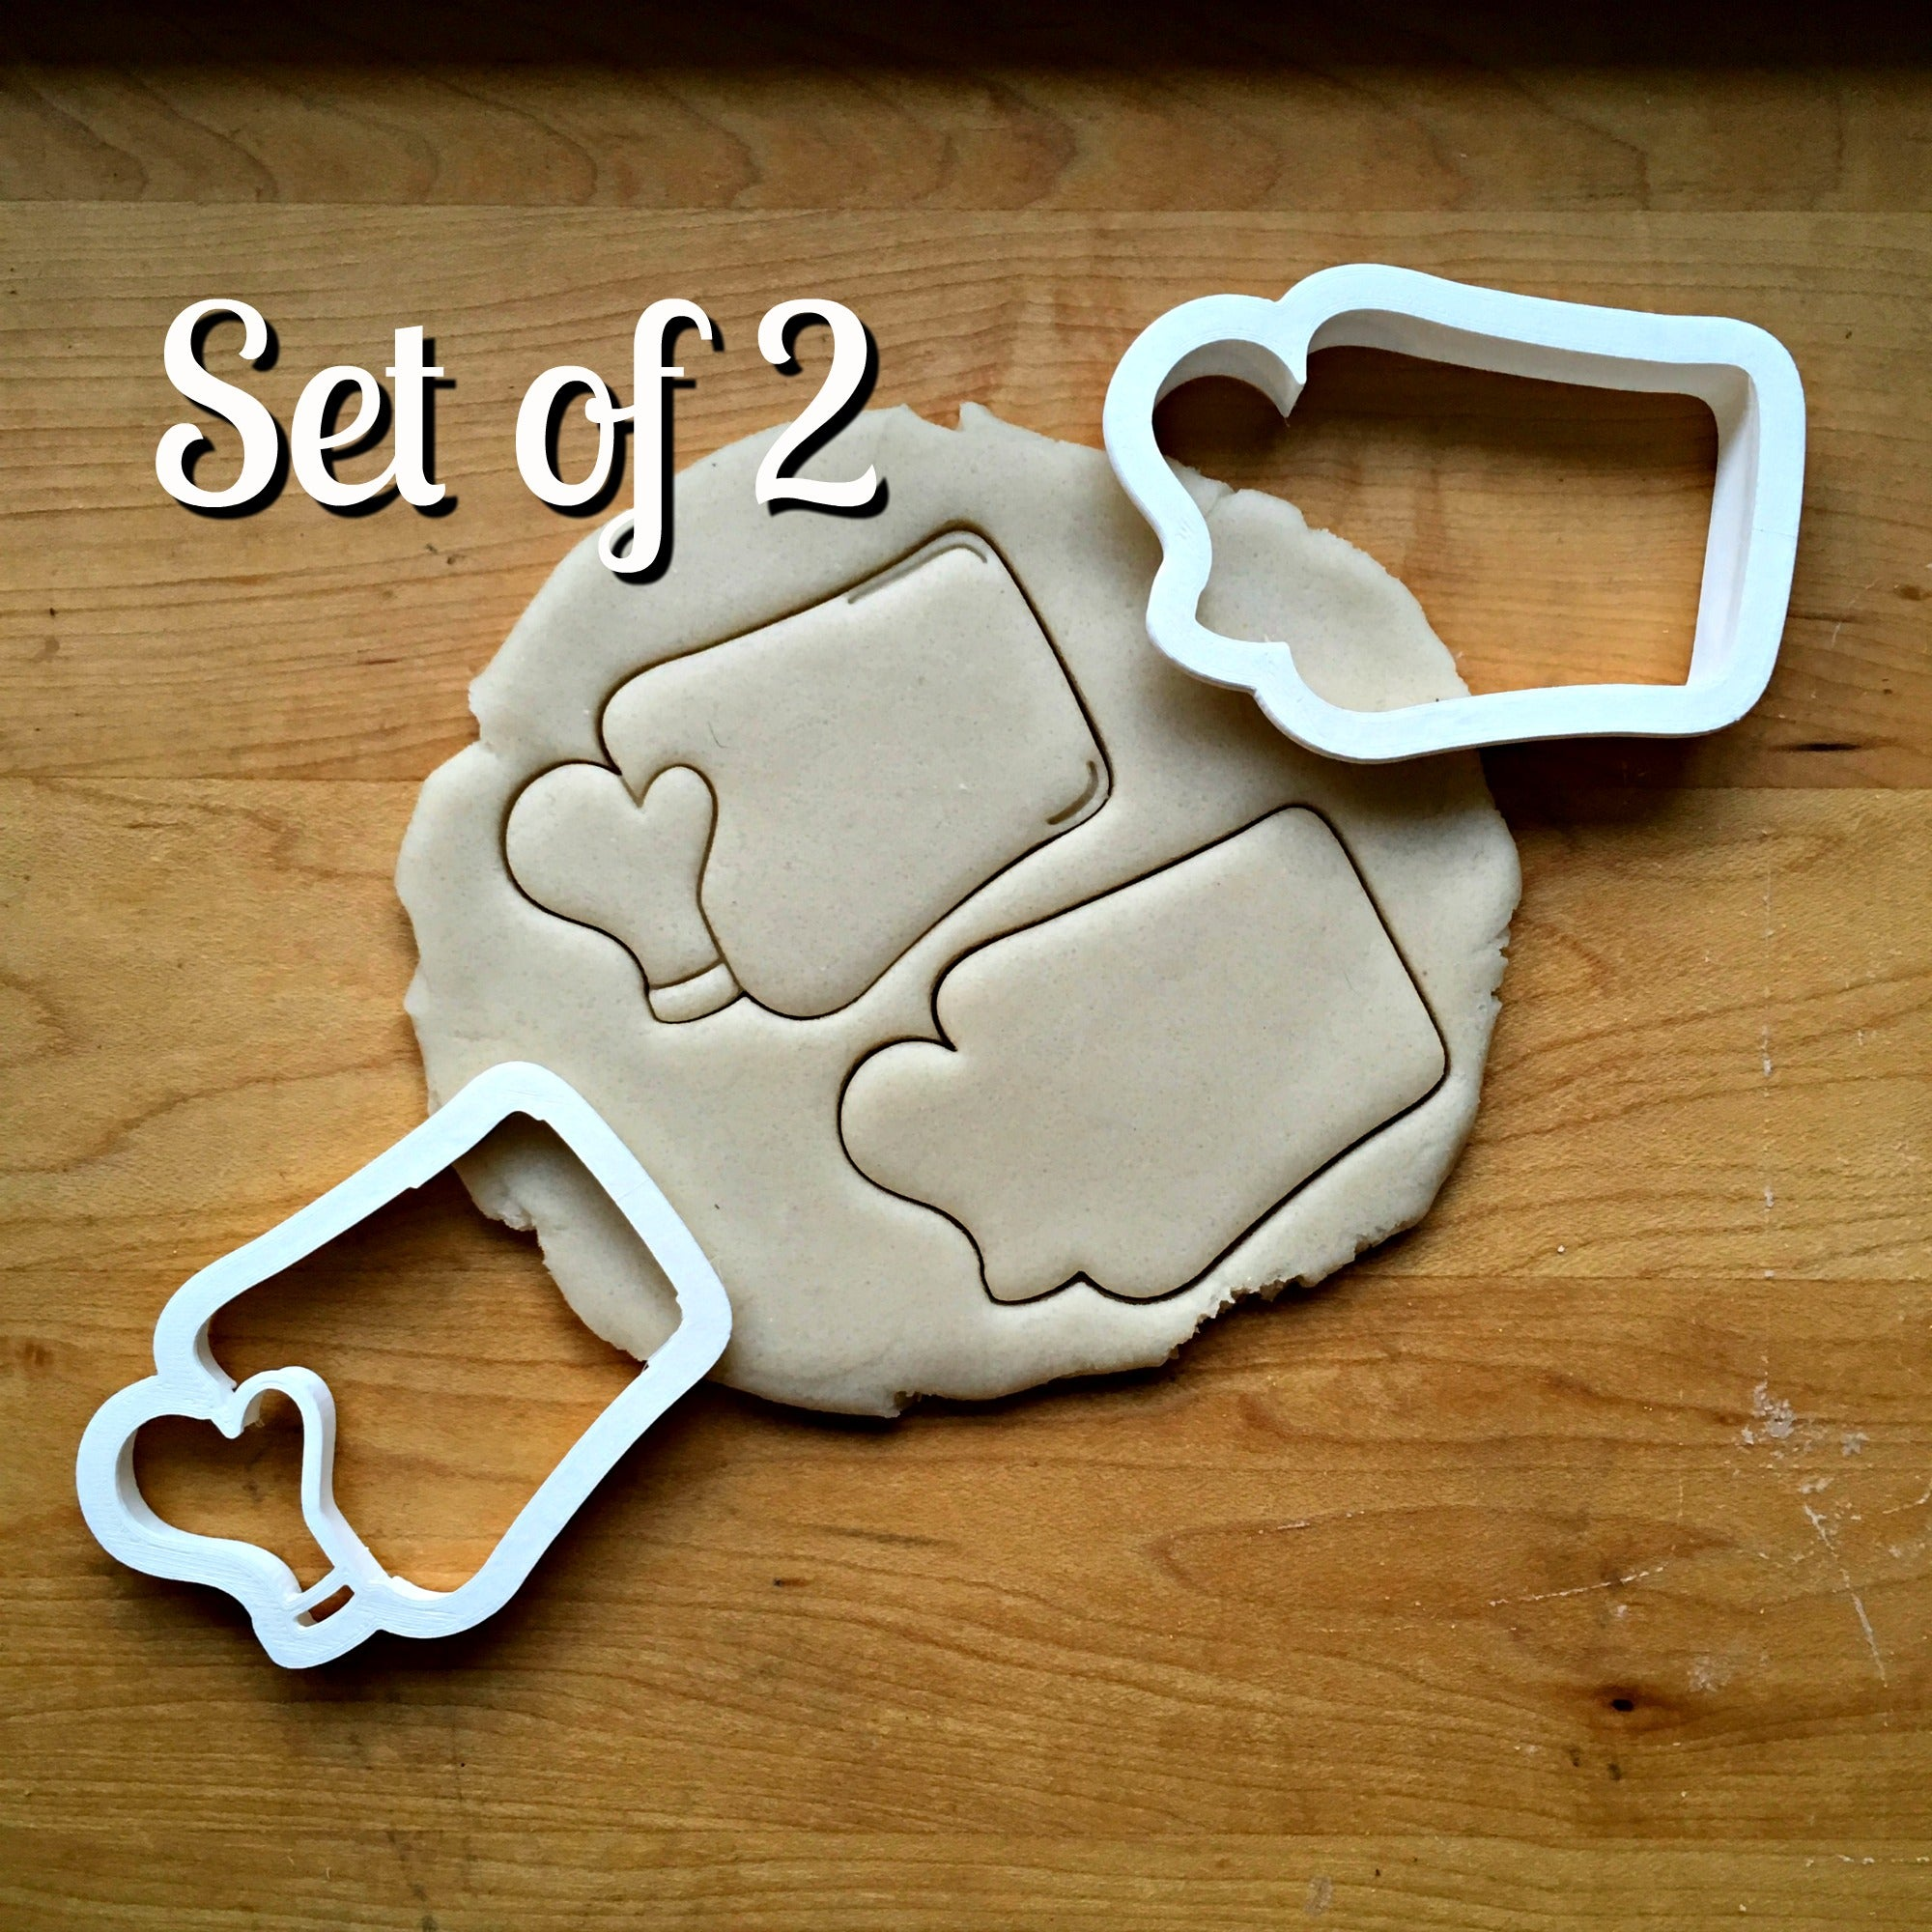 Set of 2 Baking Sheet with Mitt Cookie Cutters/Dishwasher Safe